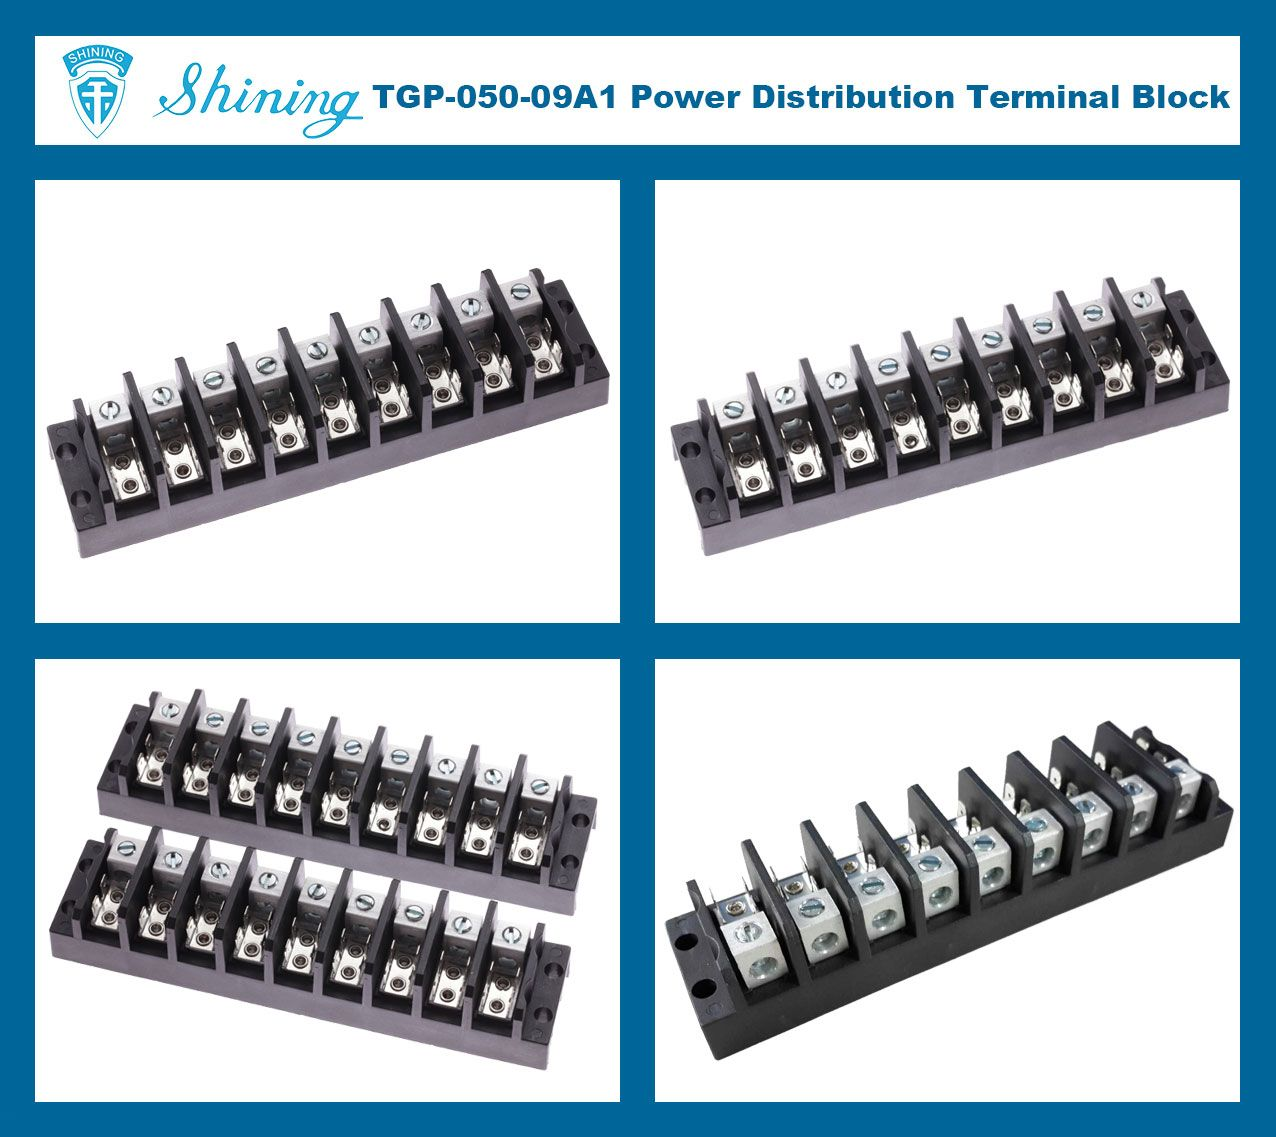 TGP-050-09A1 600V 50A 9 Pole Electrical Power Terminal Block